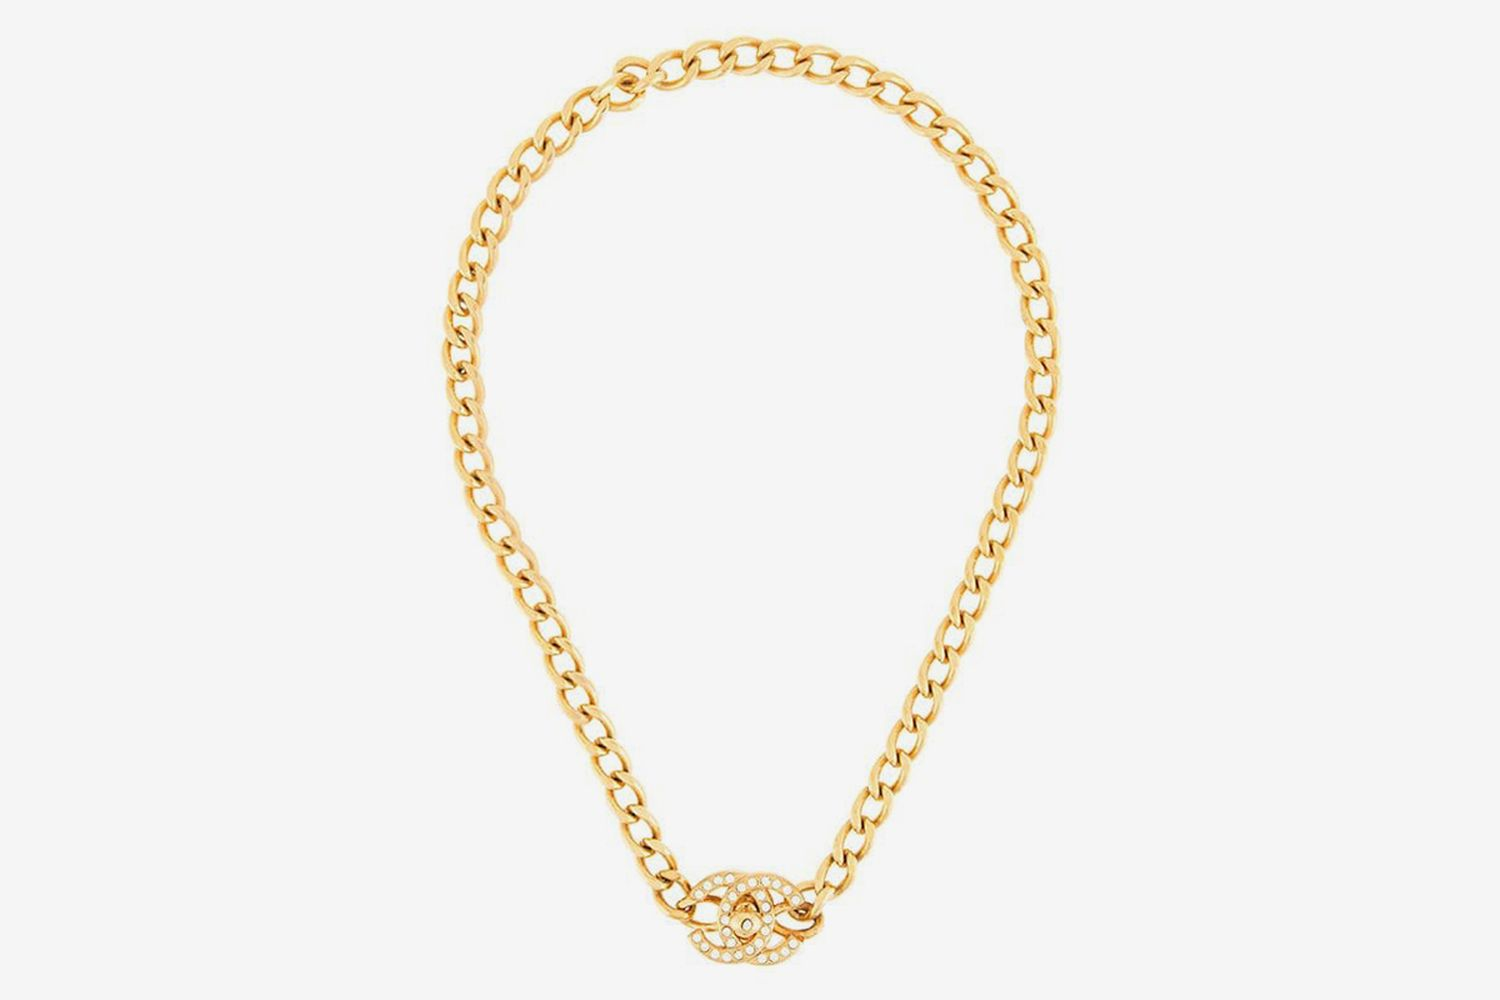 CC Turnlock Chain Necklace